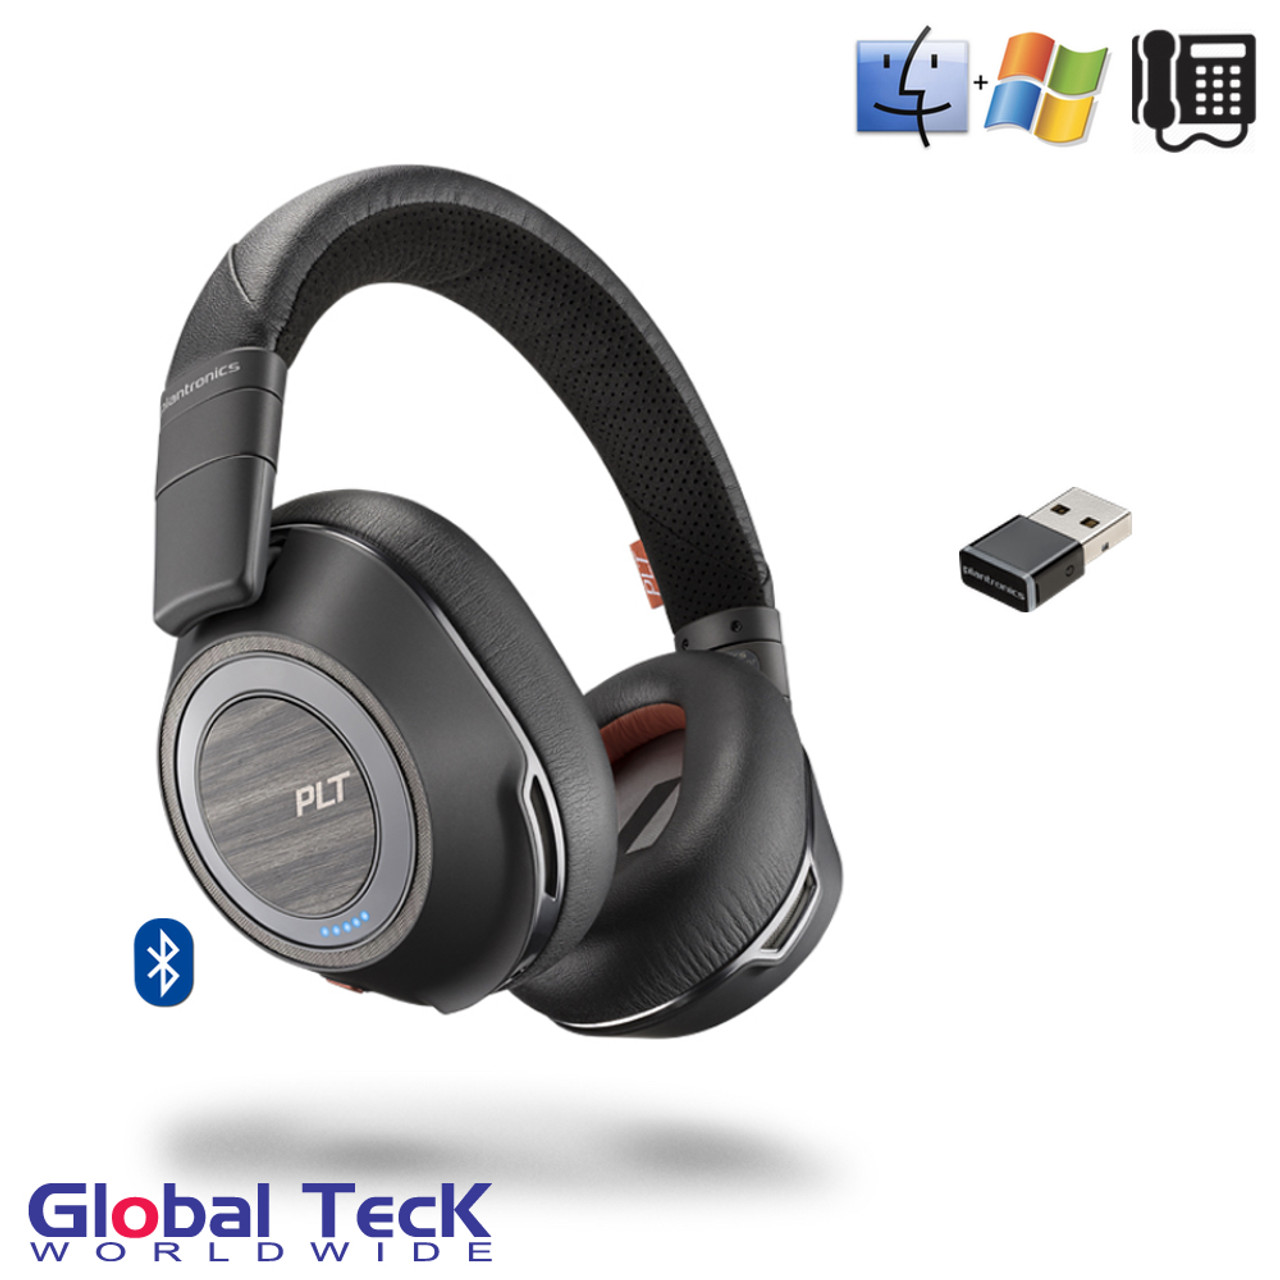 Plantronics Voyager 8200 Uc Stereo Bluetooth Headset Usb Dongle 208769 01 Mobile Pc Mac Tablet Softphones Unified Communications